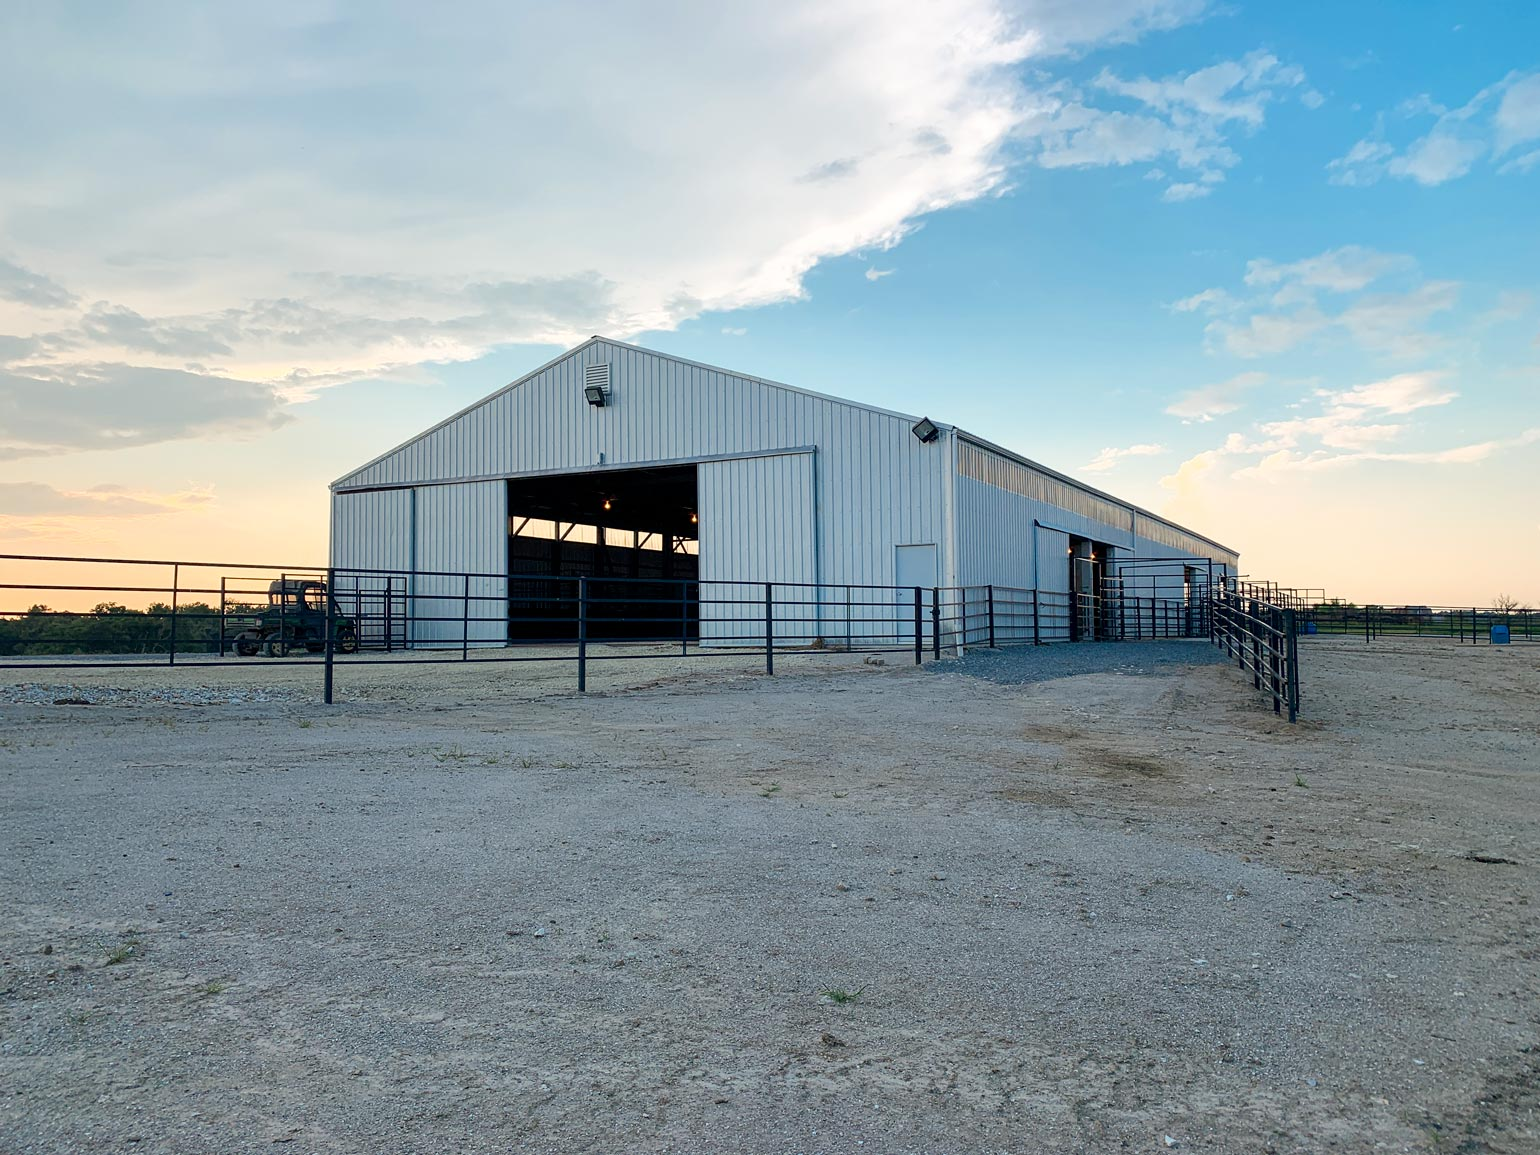 A white structure with metal fences surrounding it and used for cattle handling